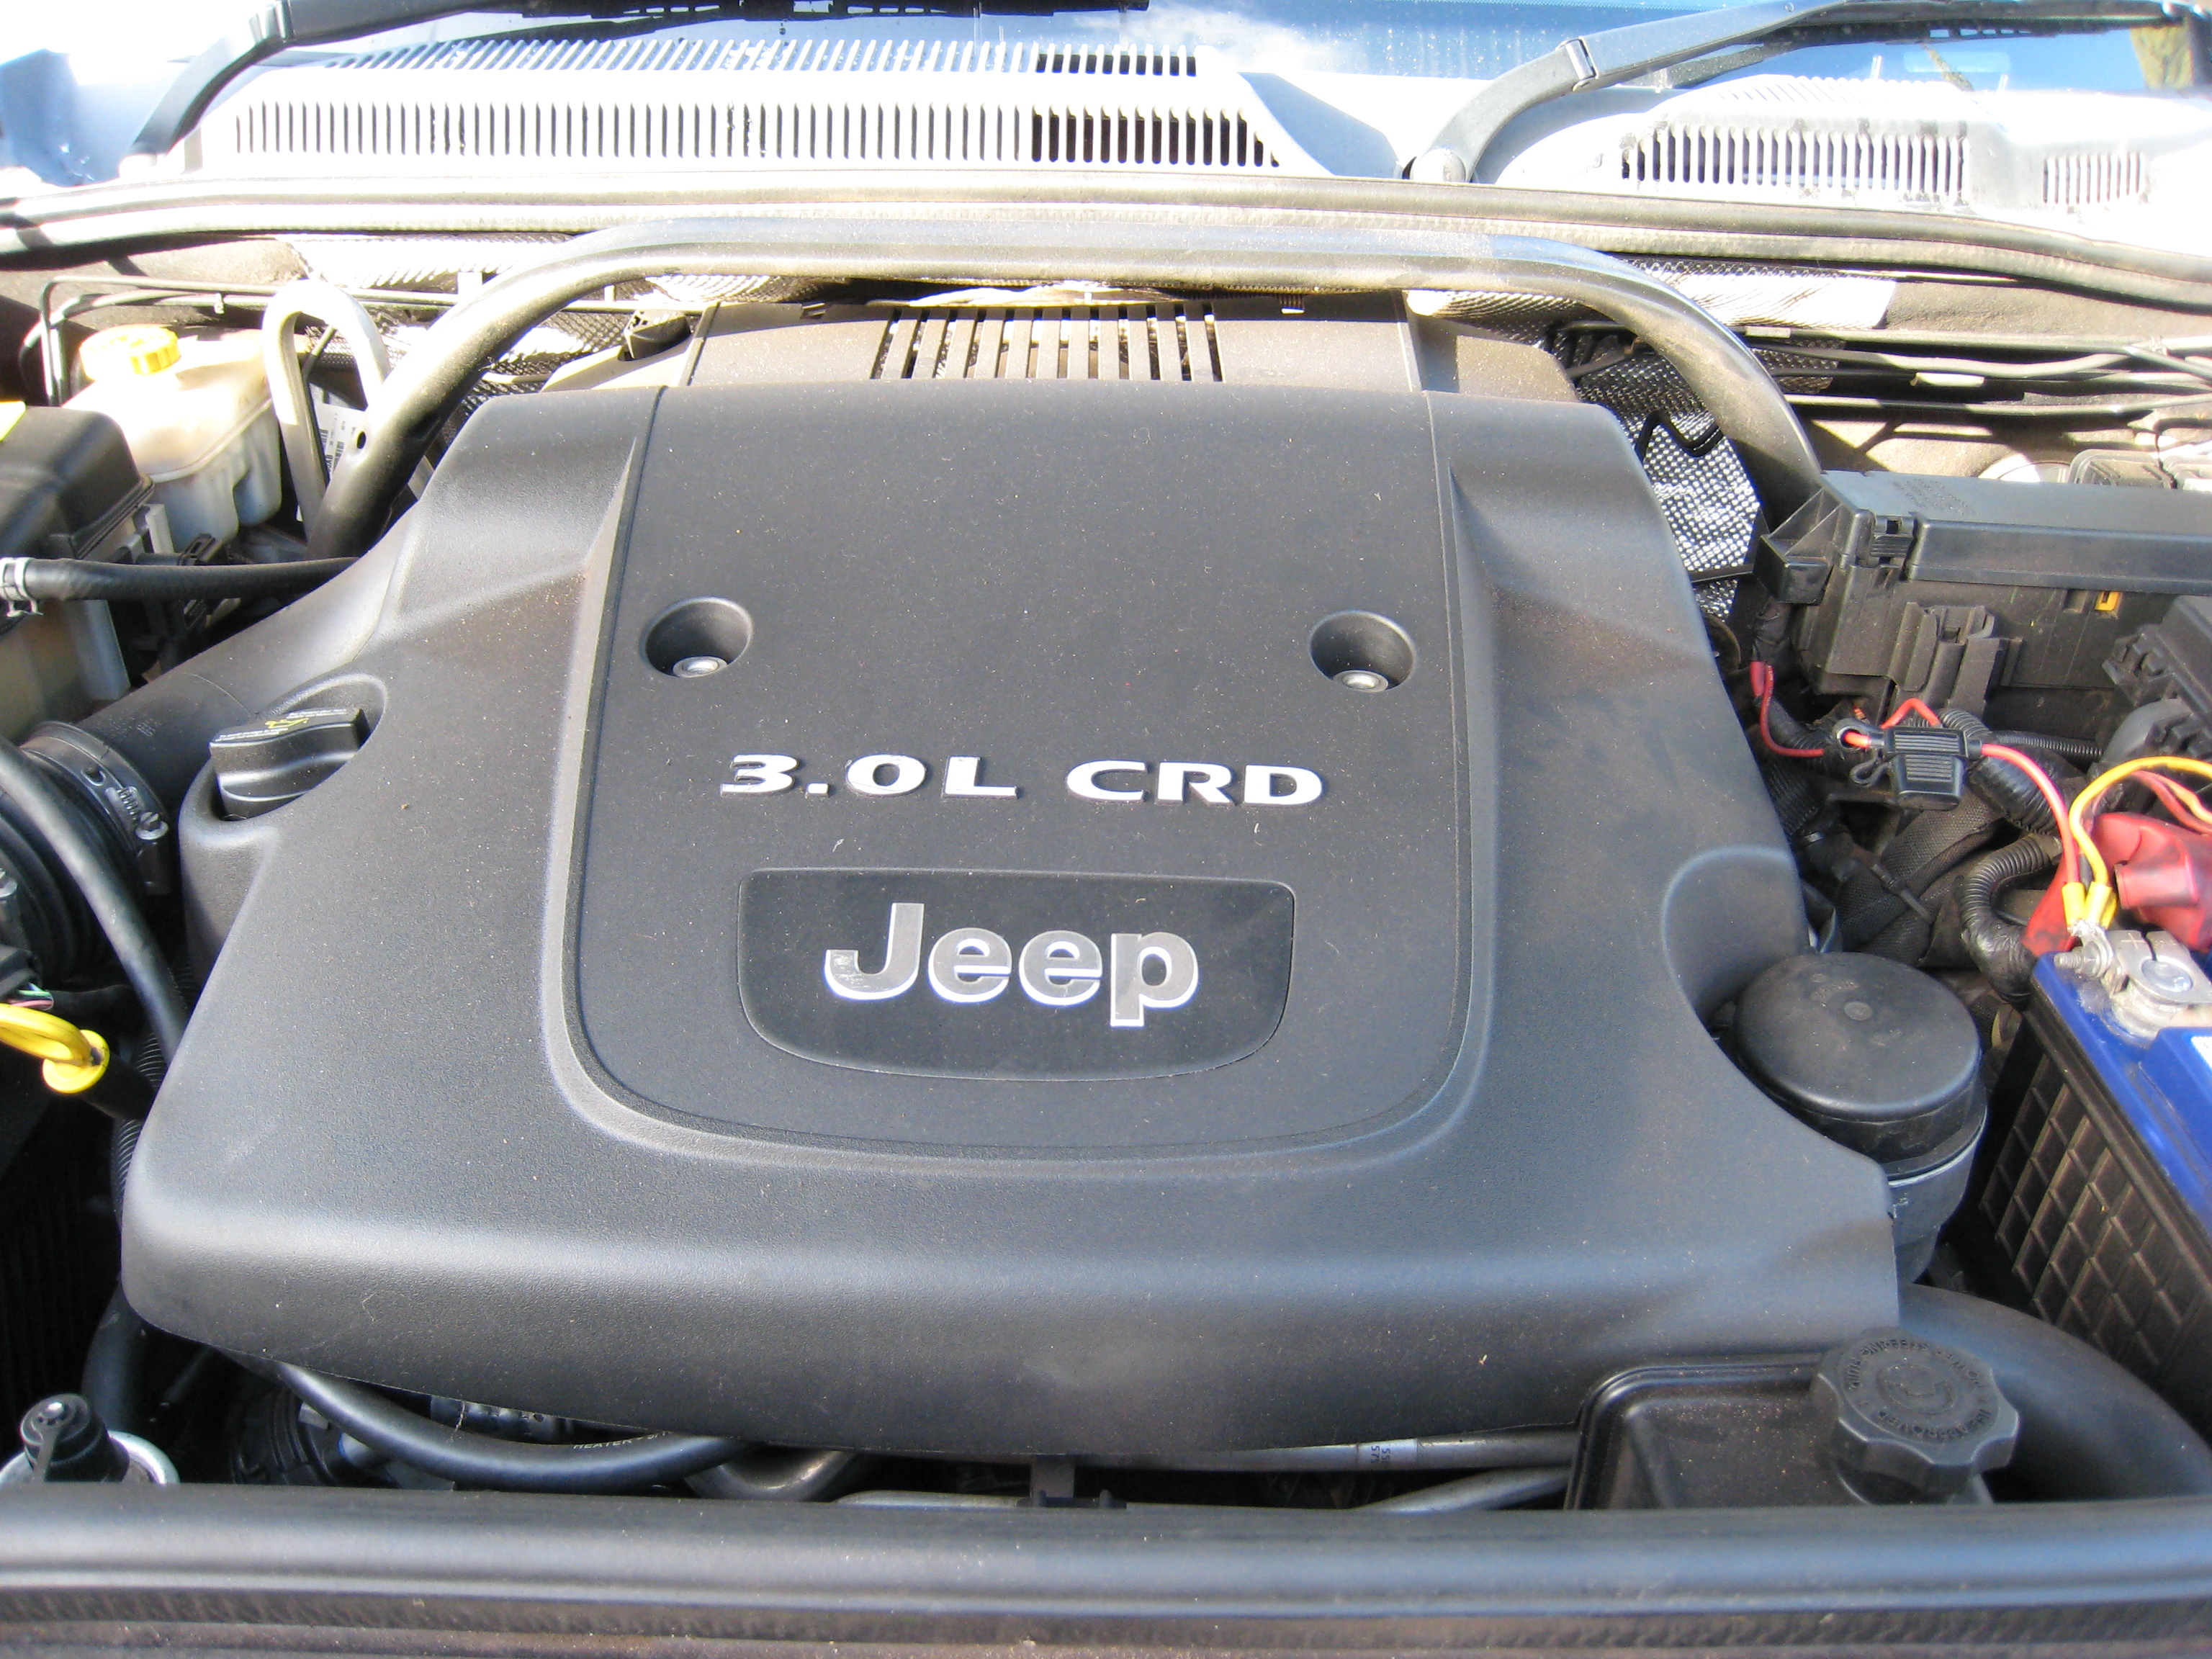 Jeep mander Motor Perth 3 0 CRD Diesel Motor For Sale Central